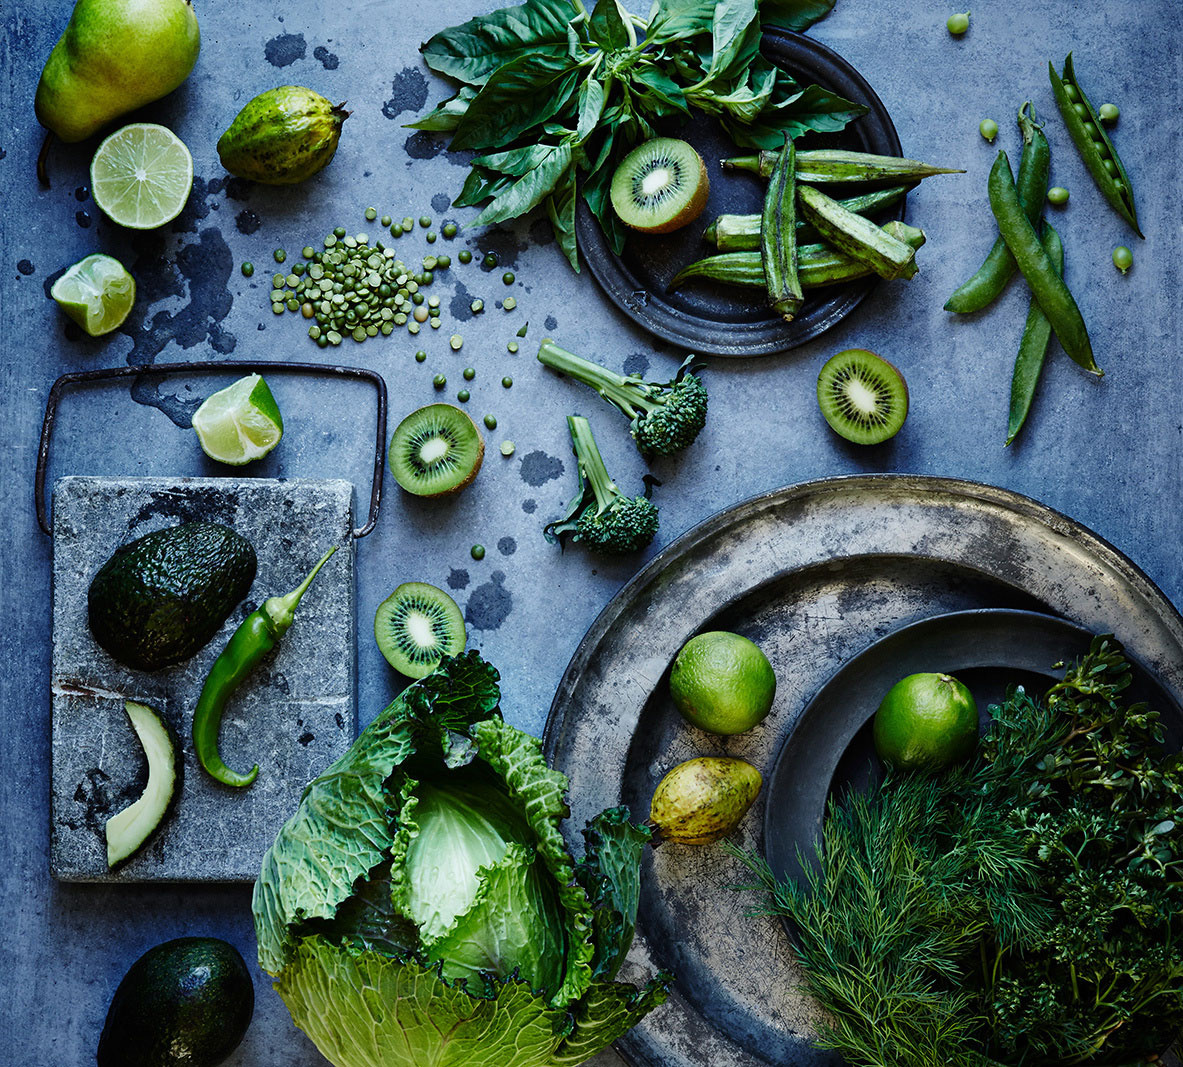 Green food still life on concrete background  | Trinette + Chris Photographers